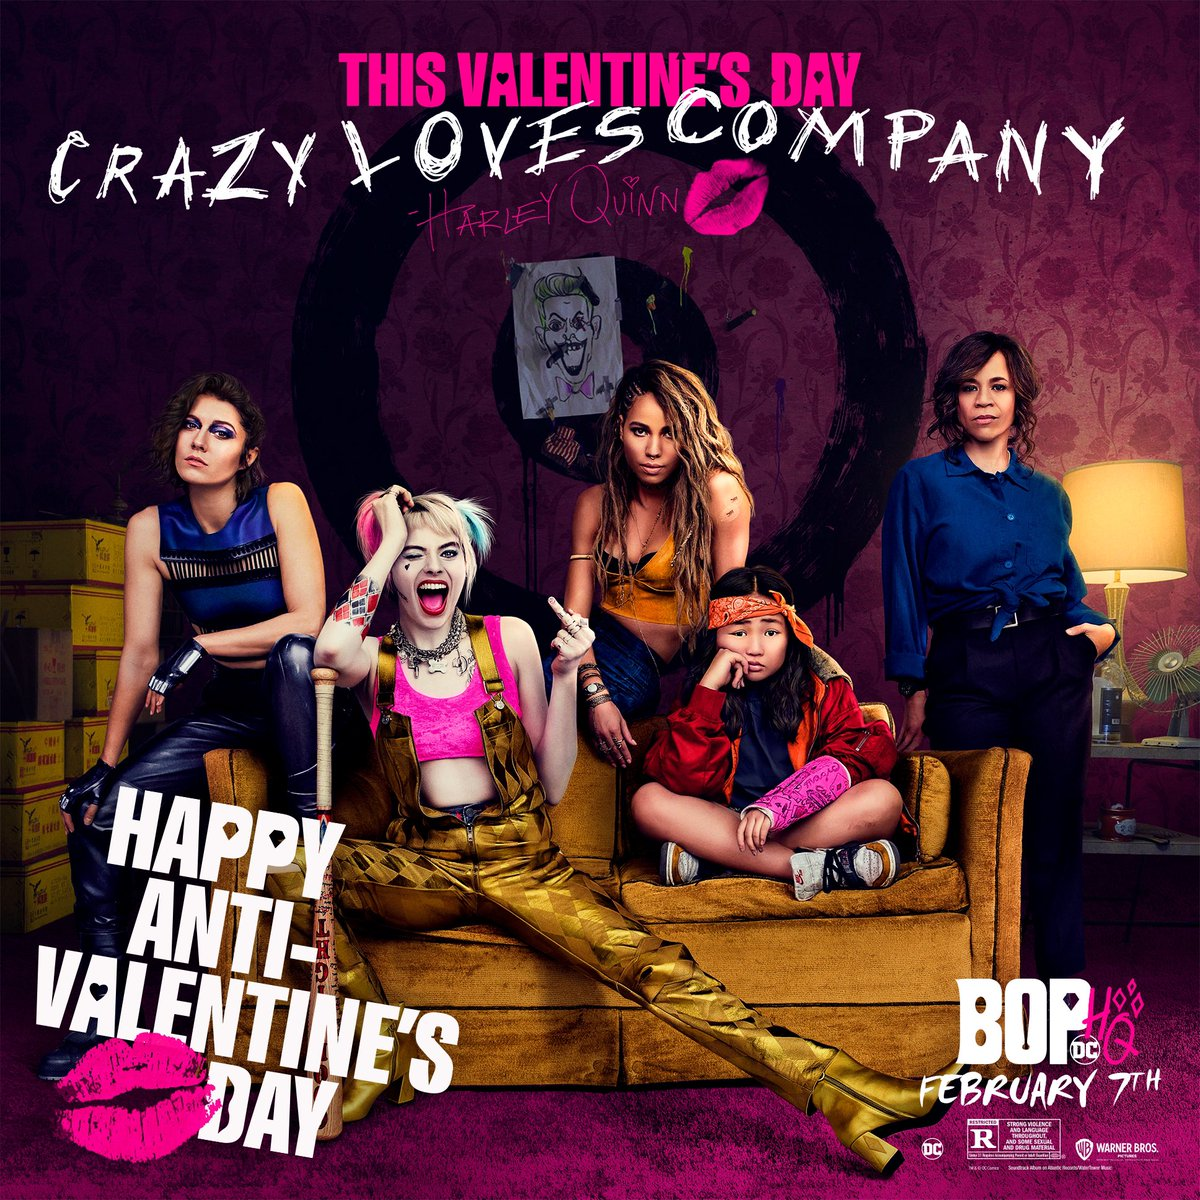 Birds Of Prey And The Fantabulous Emancipation Of One Harley Quinn 2020 Anti Valentine S Poster Birds Of Prey 2020 Photo 43229910 Fanpop Page 4